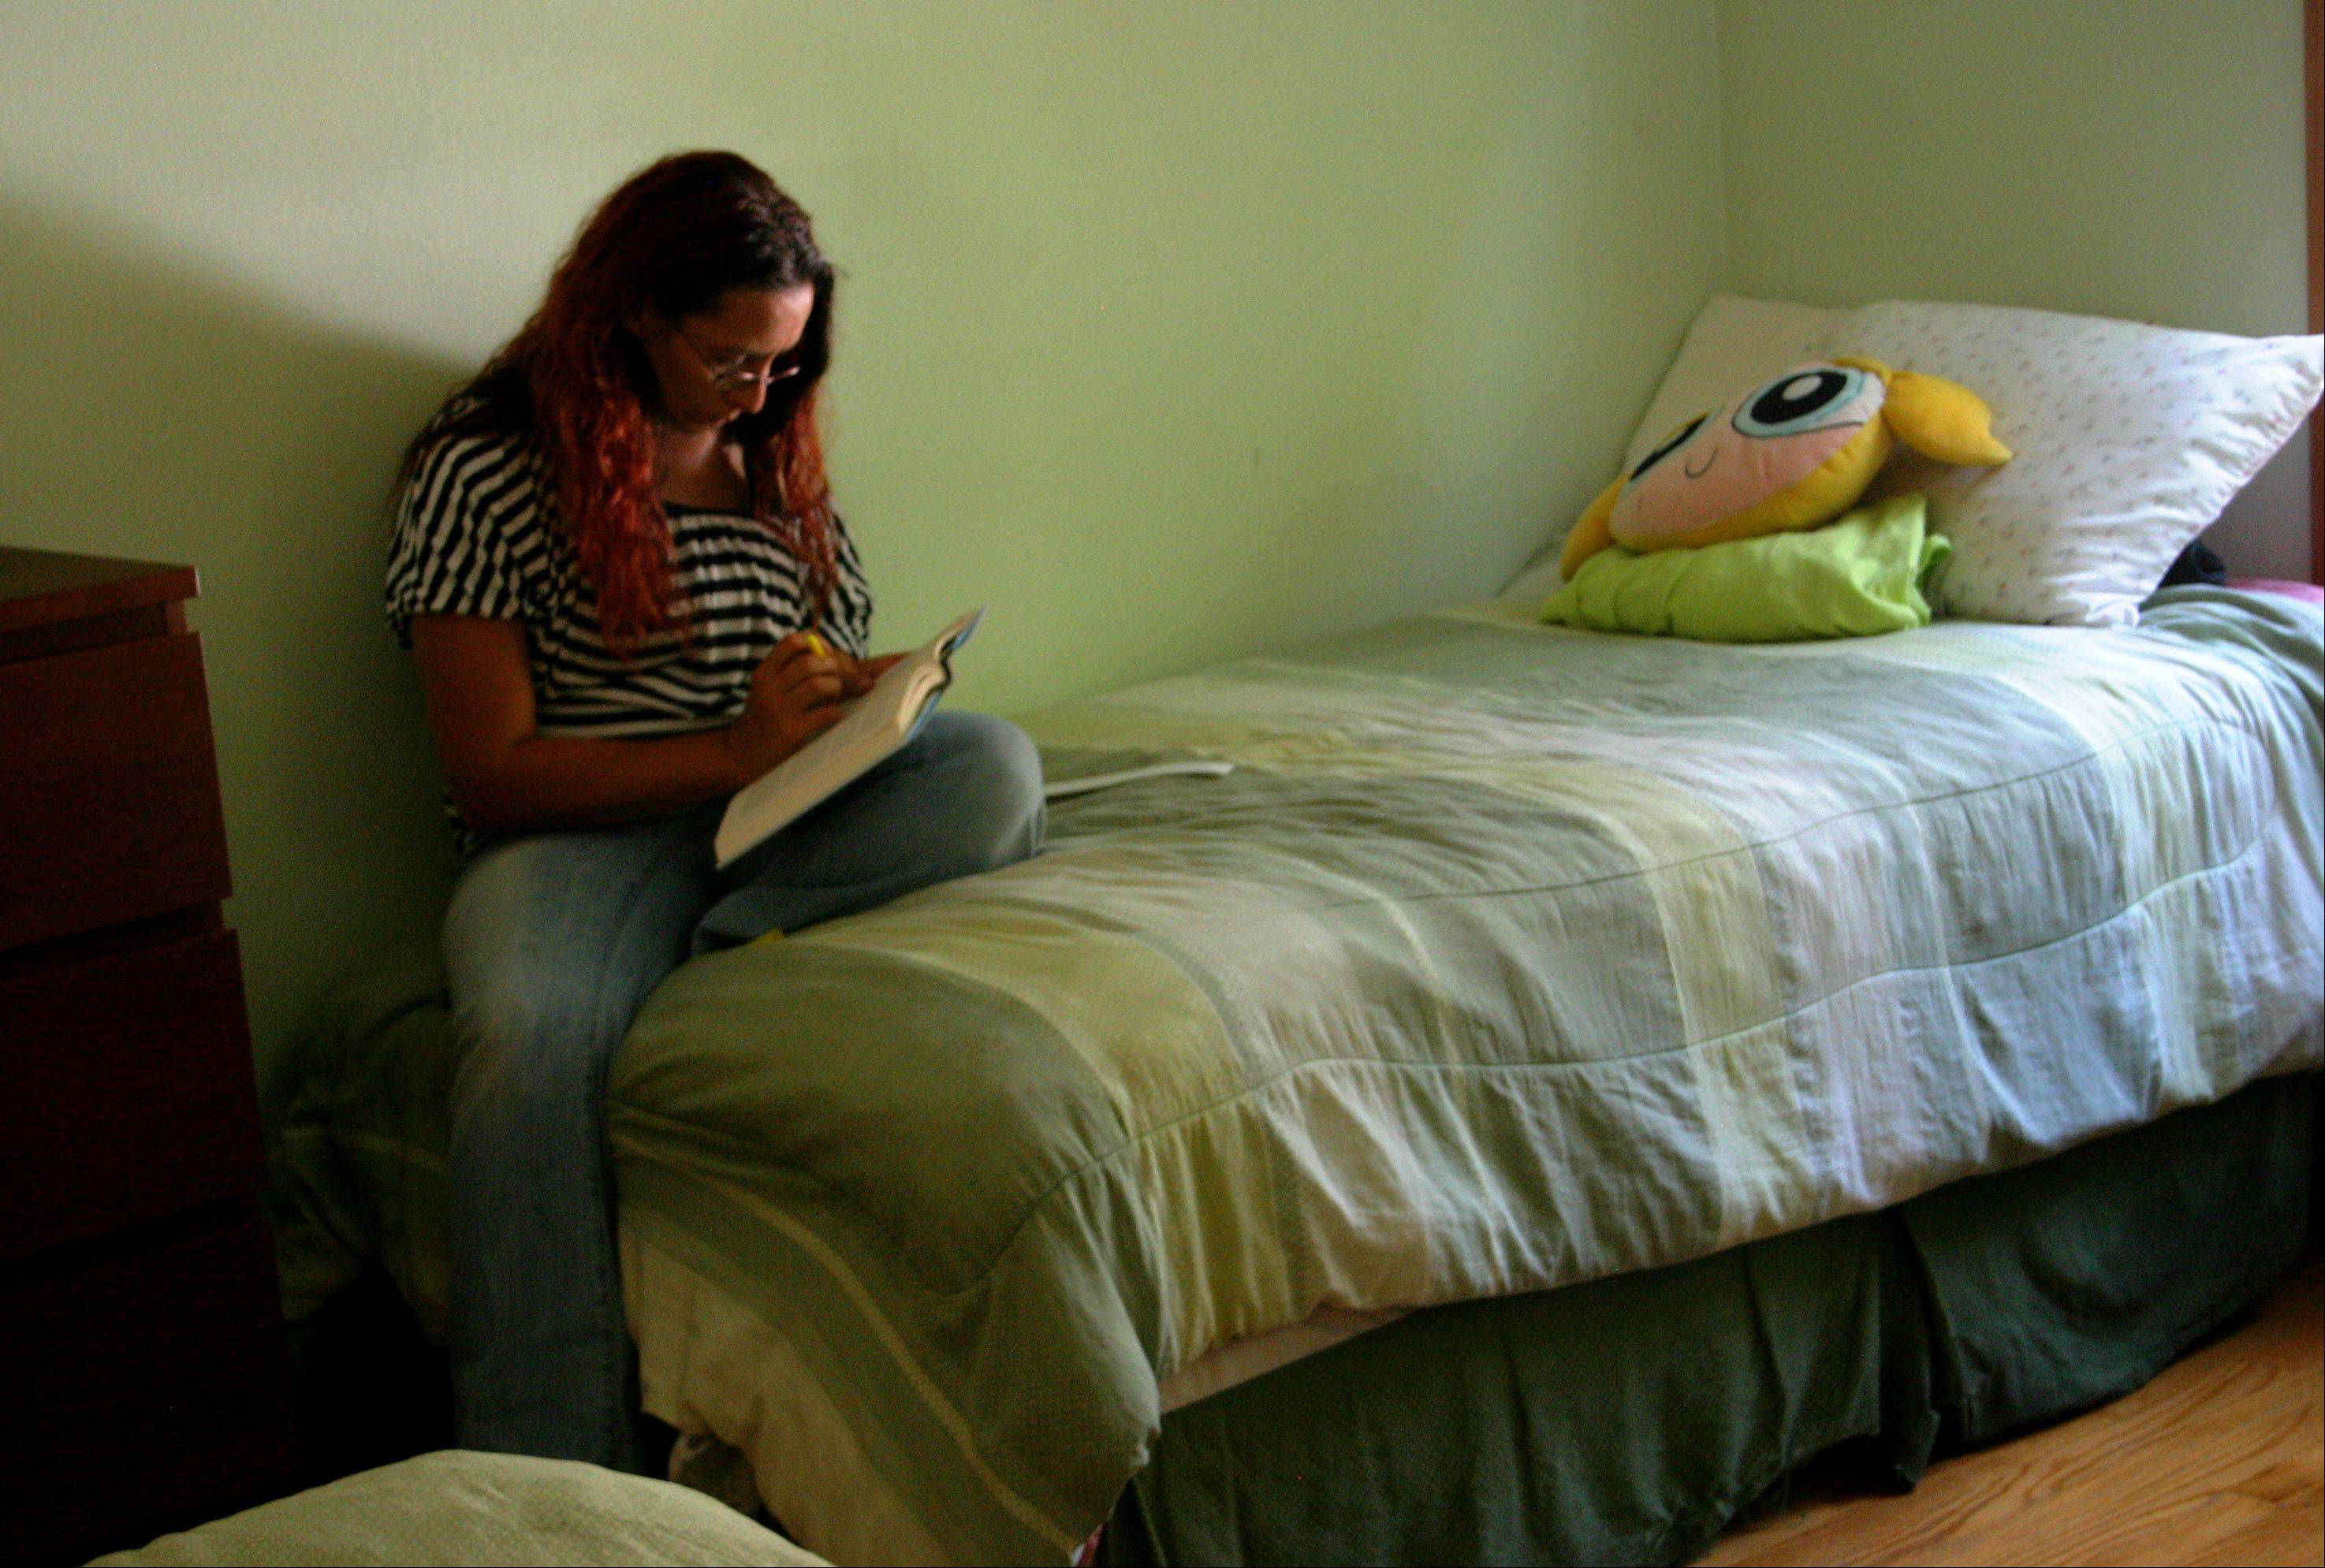 Lake County Haven resident reads on a bed at the shelter.